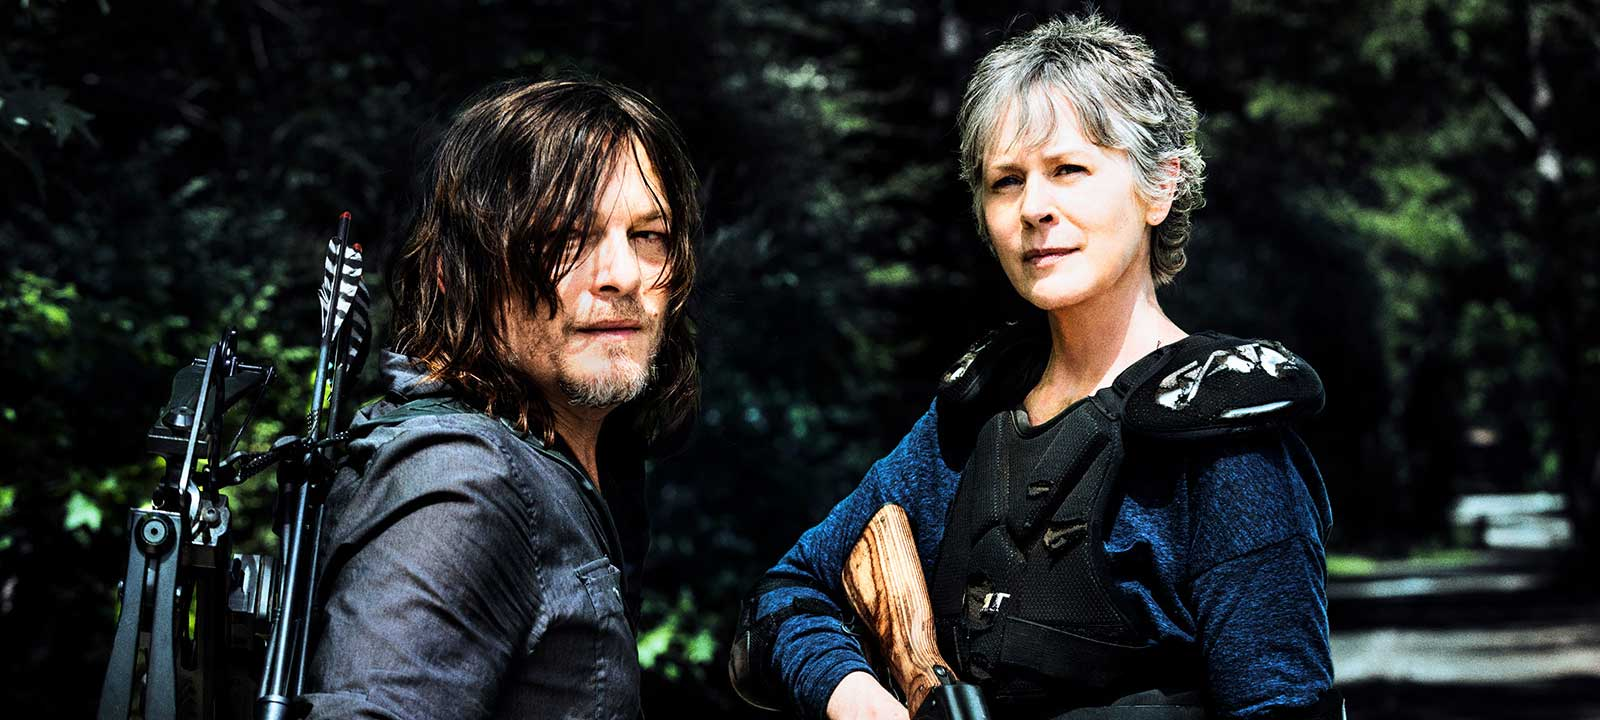 the-walking-dead-extended-episodes-daryl-reedus-carol-mcbride-800×600